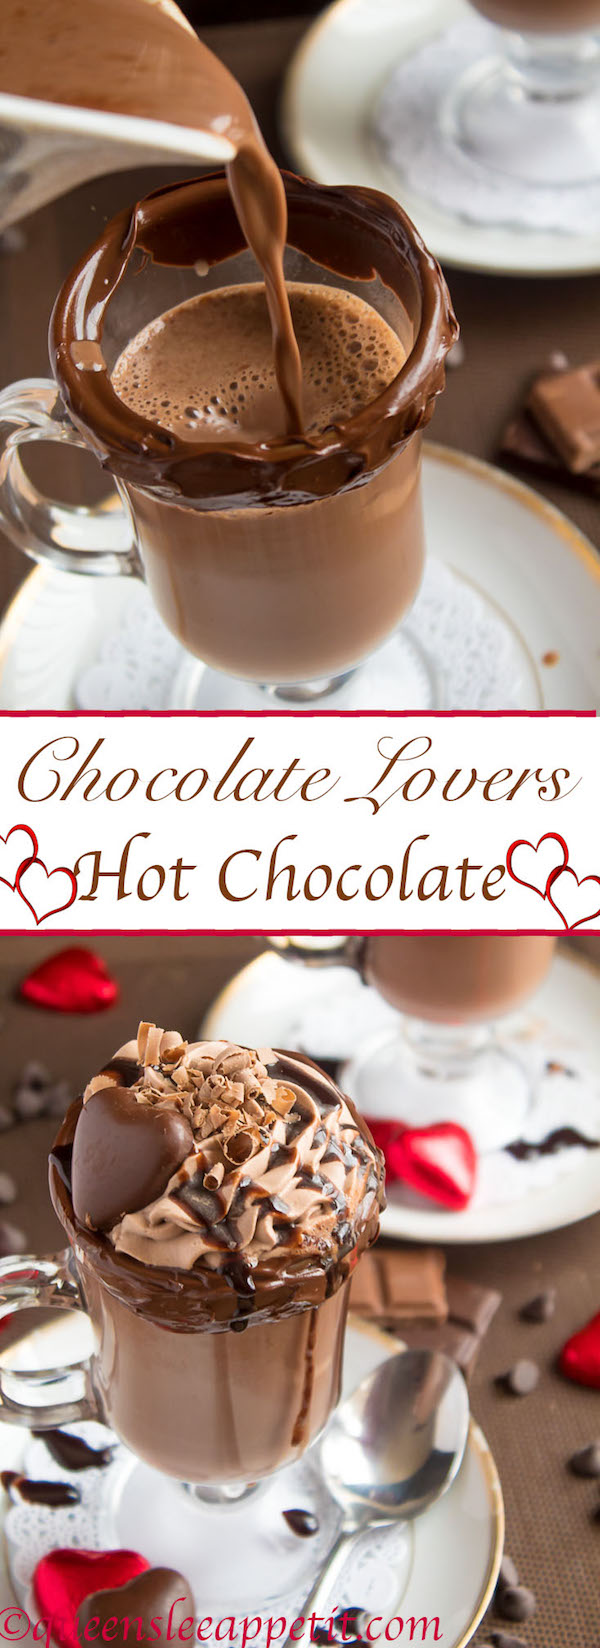 The most decadent hot chocolate, topped with chocolate whipped cream and more delicious chocolate garnishes. This rich and creamy Hot Chocolate was created for the chocolate lover in you.